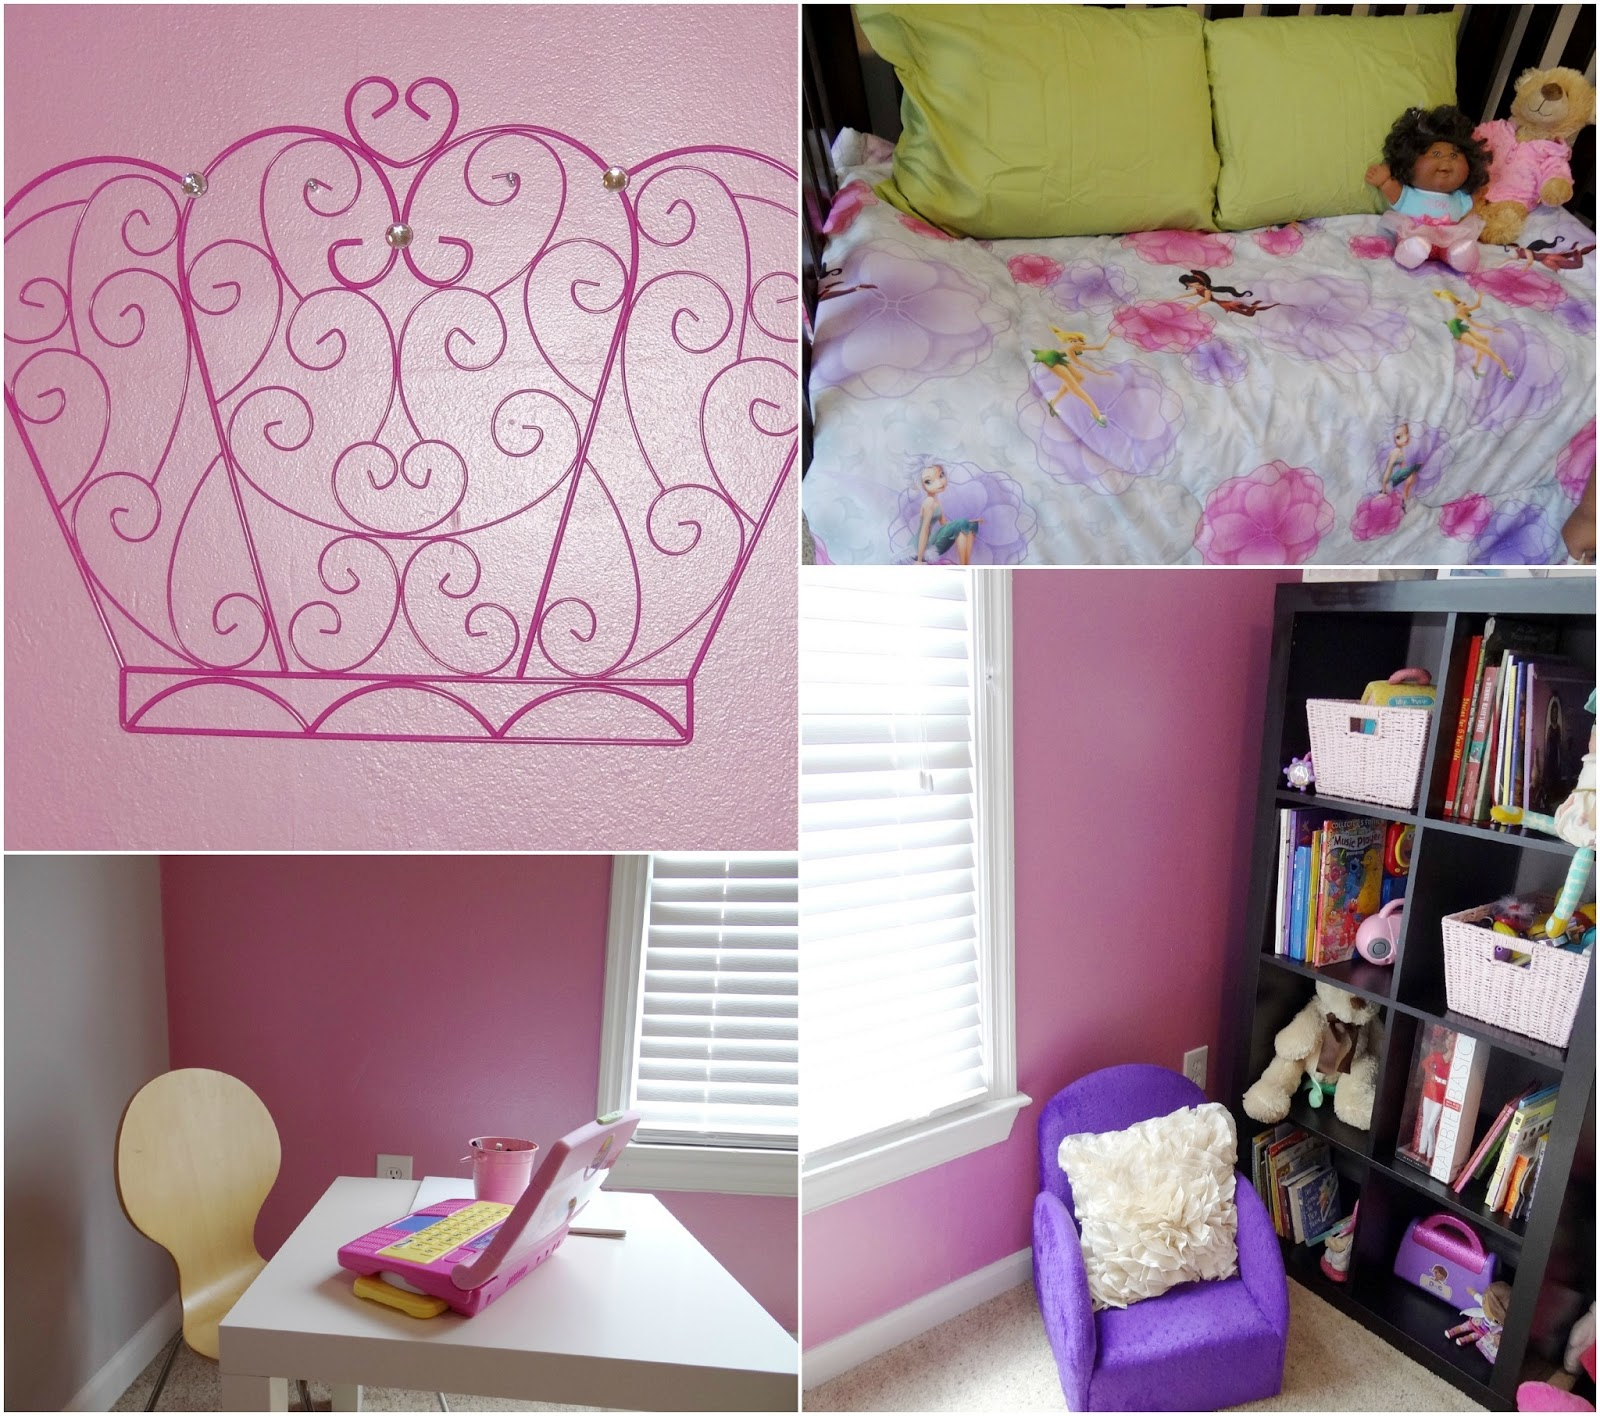 P's Bedroom Makeover Party #DisneyPaintMom {Before + After} - Baby